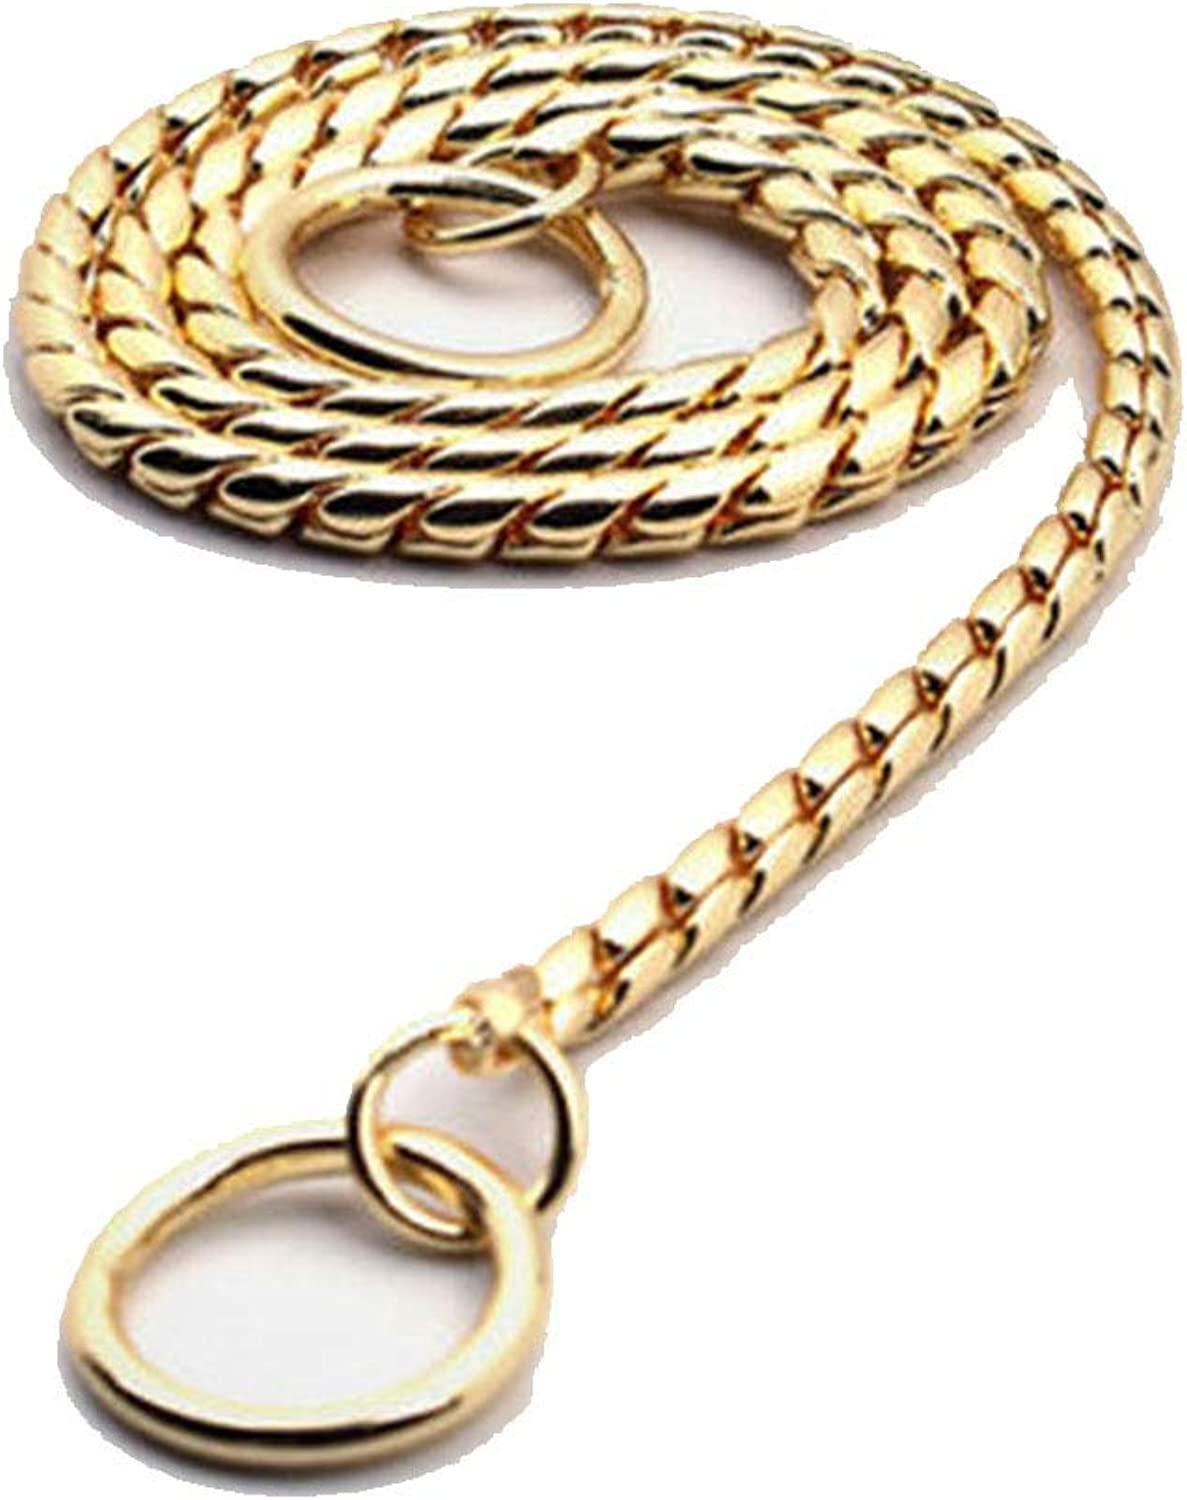 DQMSB Dog P Chain Collar Traction Rope, Snake Chain, P Rope, Dog Chain Stainless Steel, Large and Medium Small Dog Training Rope Leash (color   Local gold, Size   50cm)